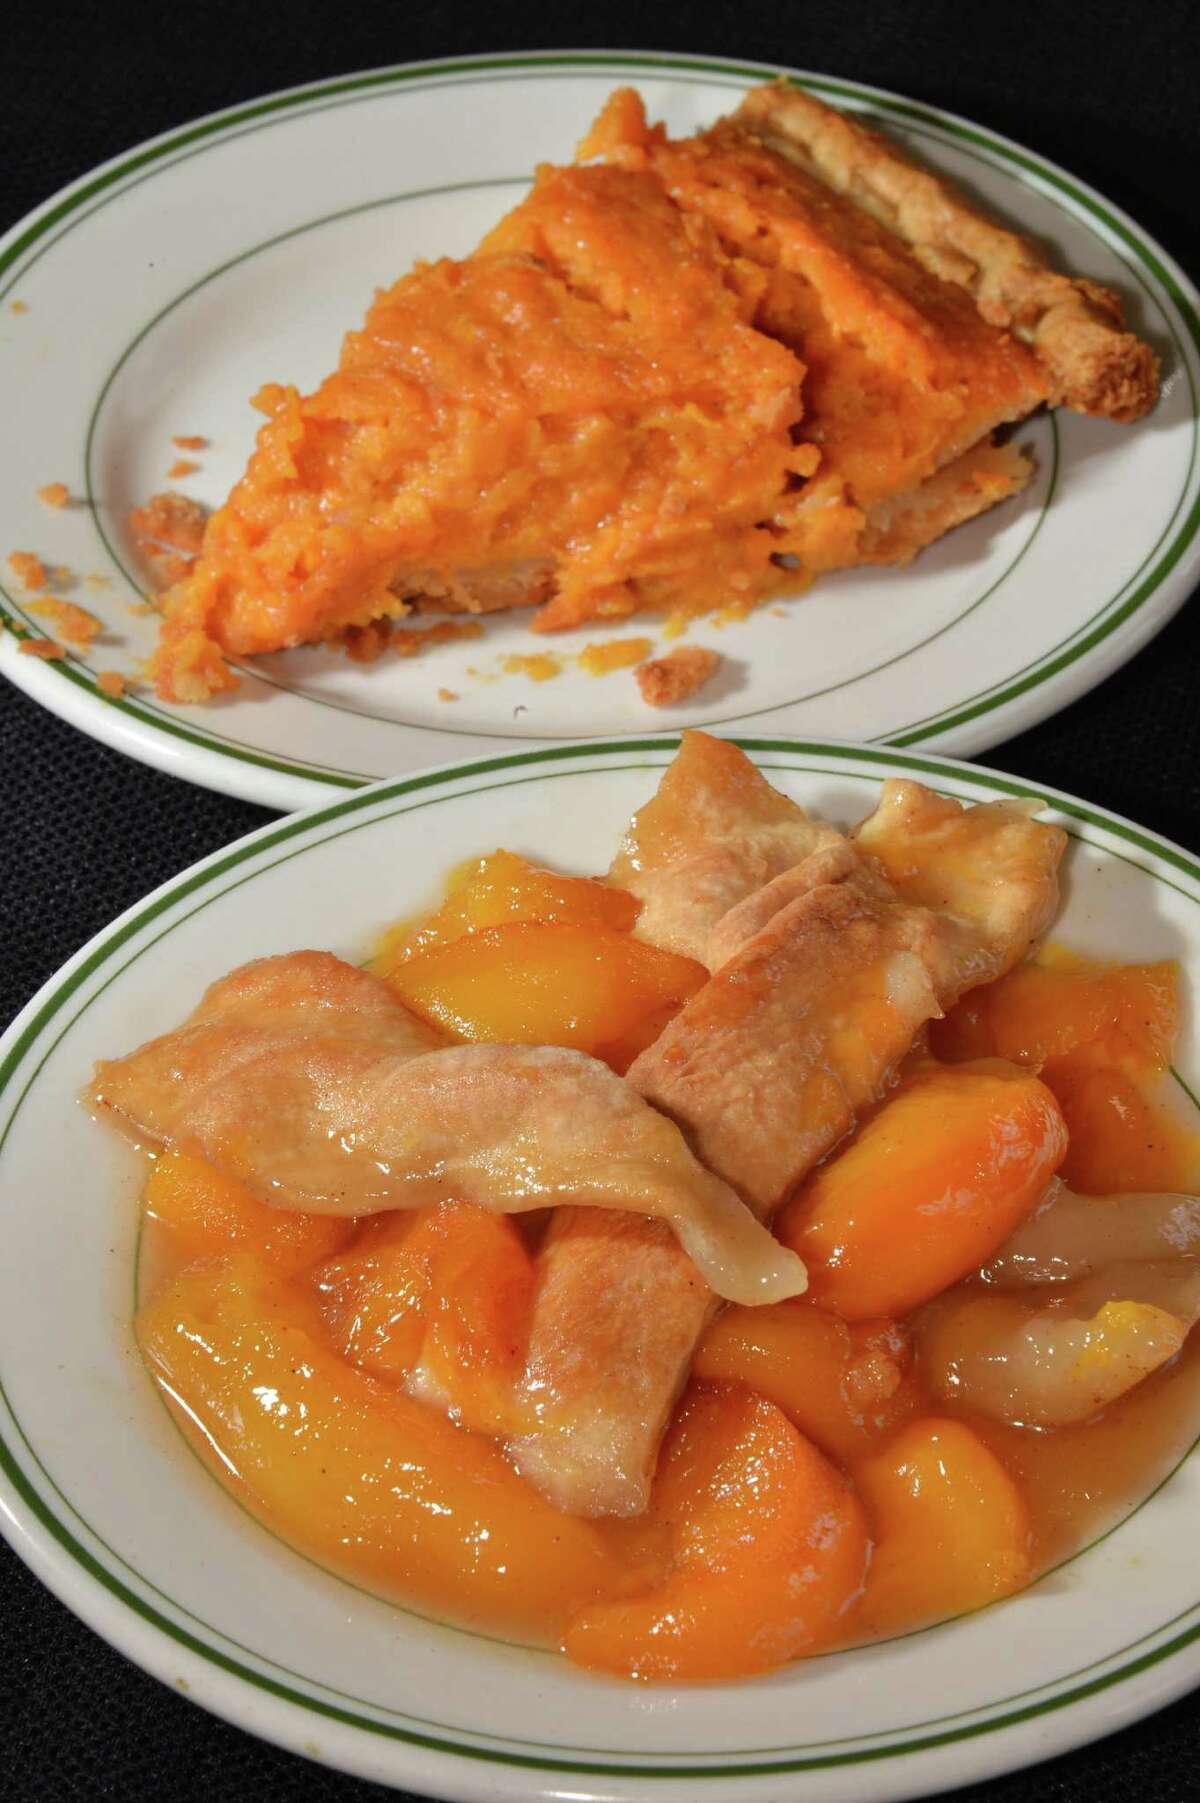 Home made desserts, sweet potato pie, top, and peach cobbler at the Madame Chef restaurant on North Allen Street in Albany June 26, 2012. (John Carl D'Annibale / Times Union)